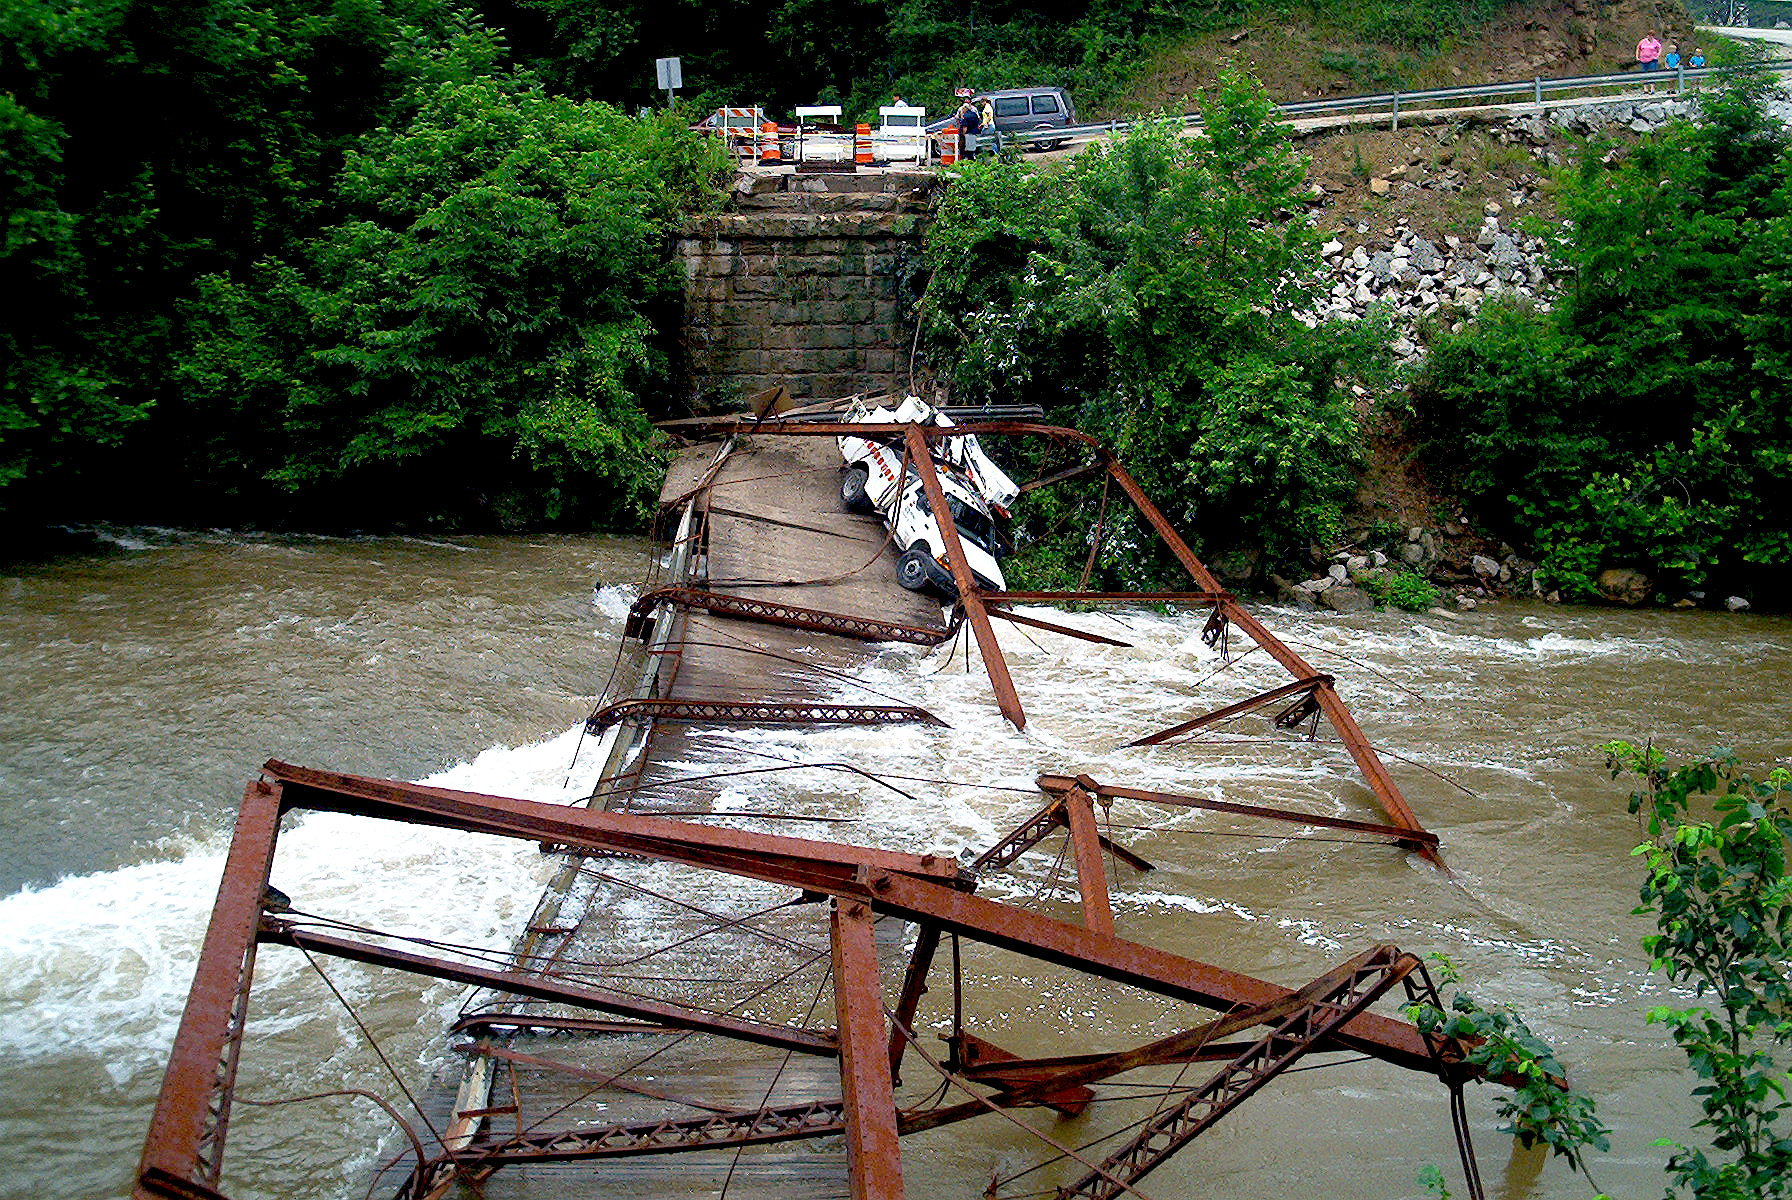 Another view of the collapsed bridge and the truck that caused it.